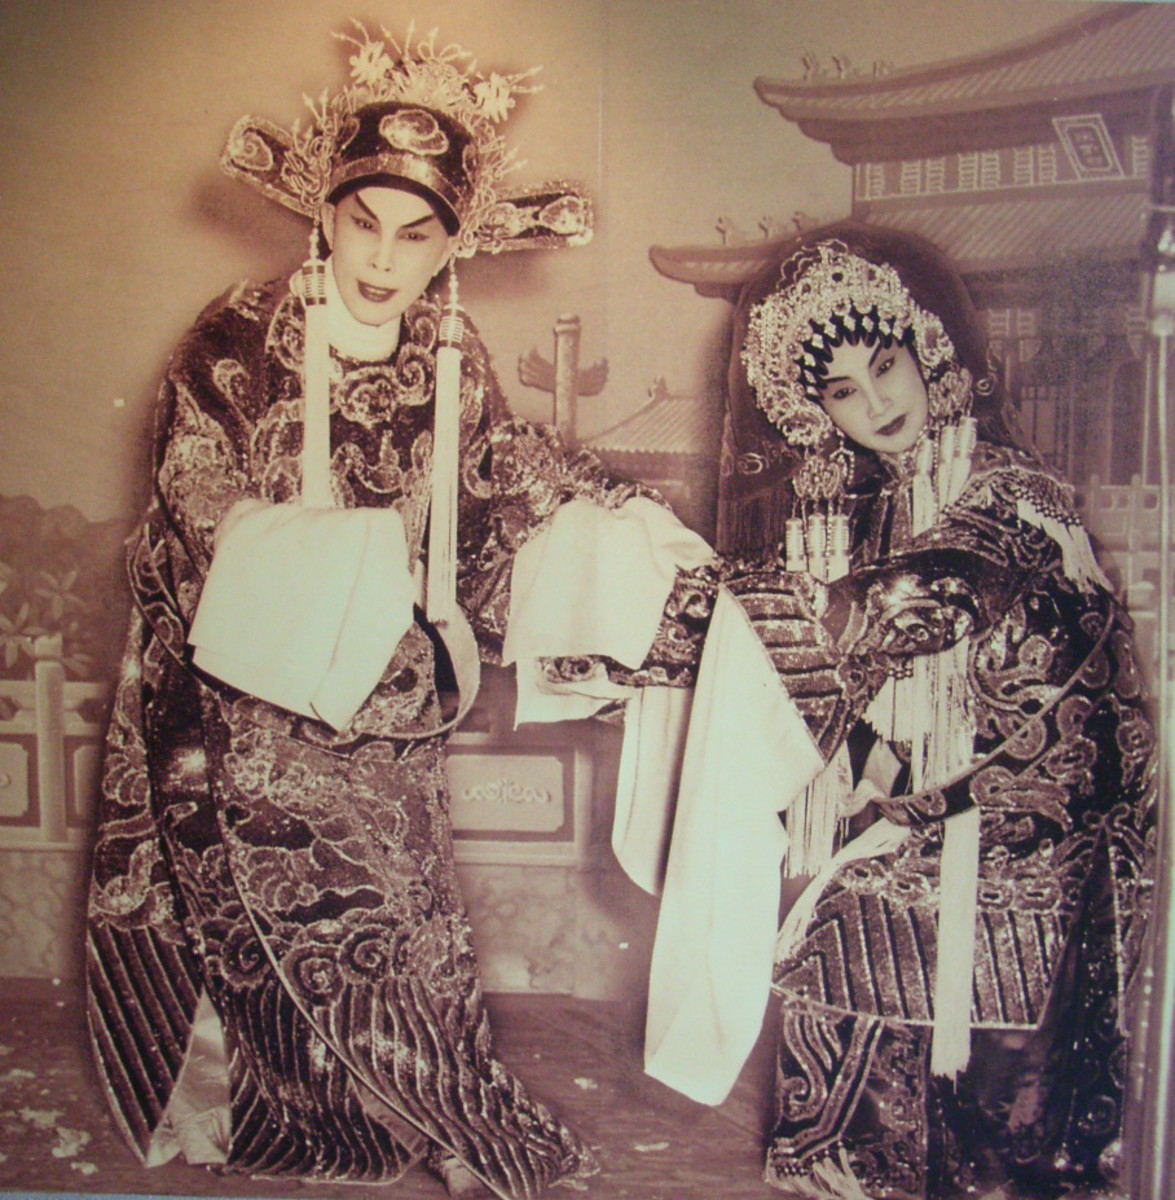 Yam Kim Fai and Pak Suet Sin in Di Nu Hua